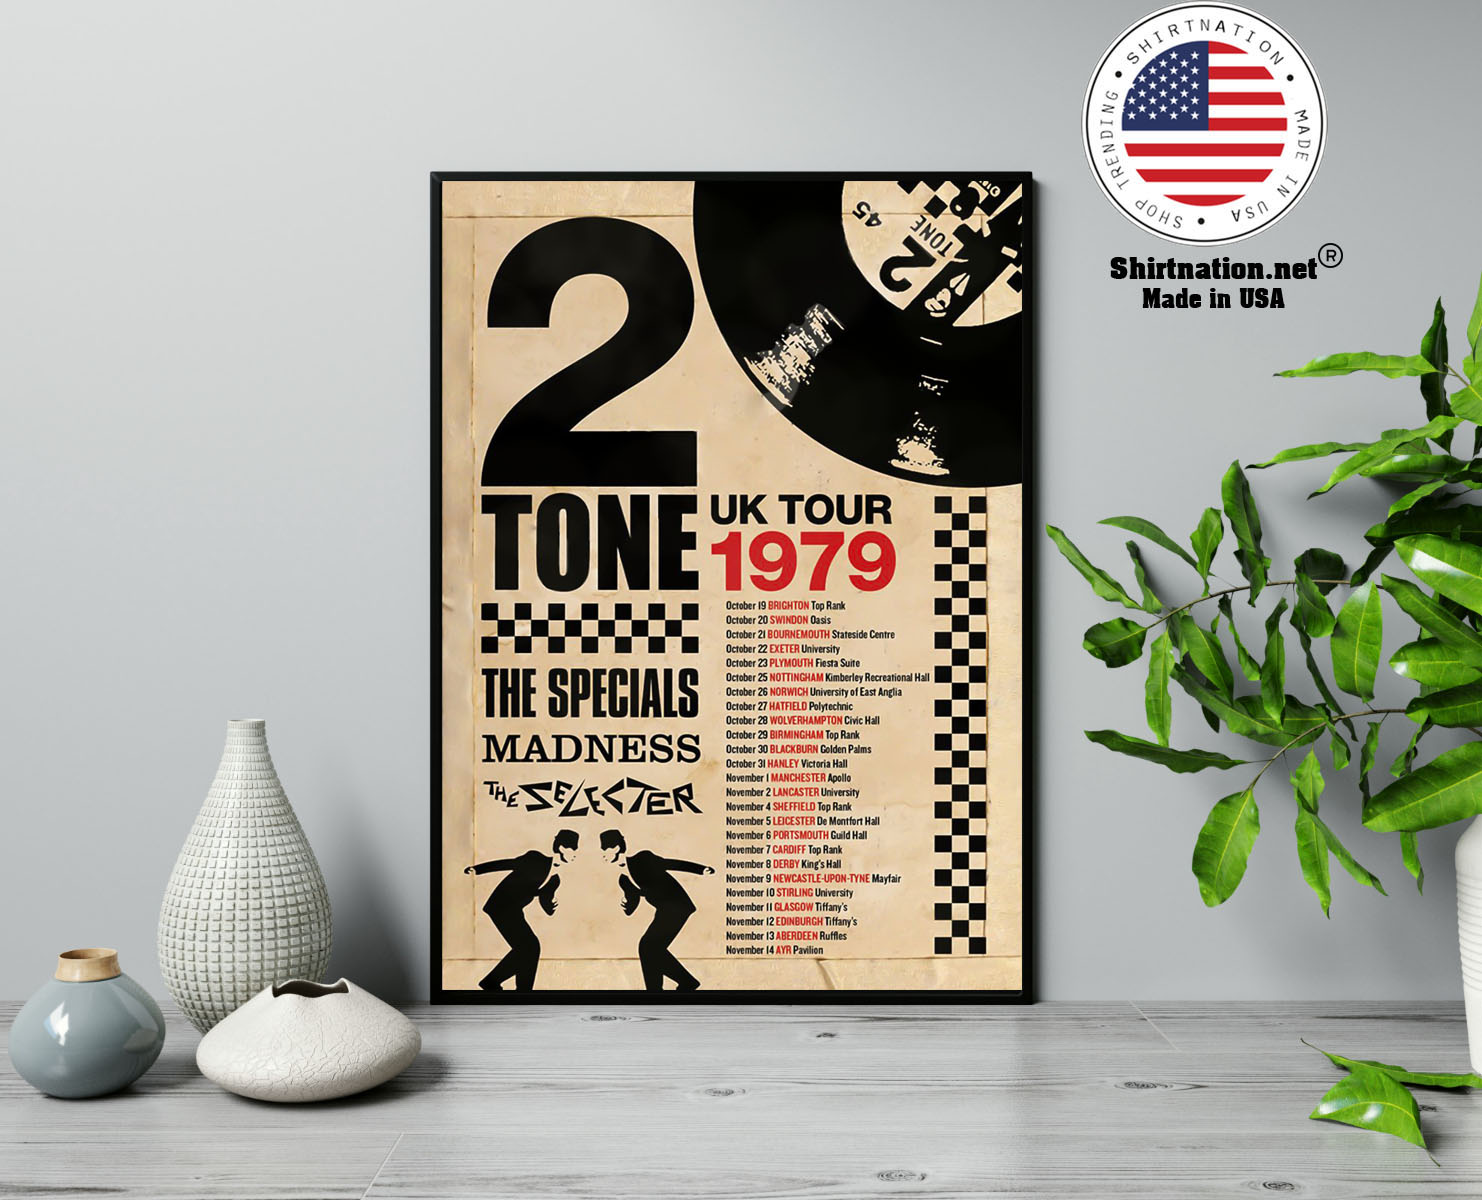 2 Tone UK tour 1979 the specials madness poster 13